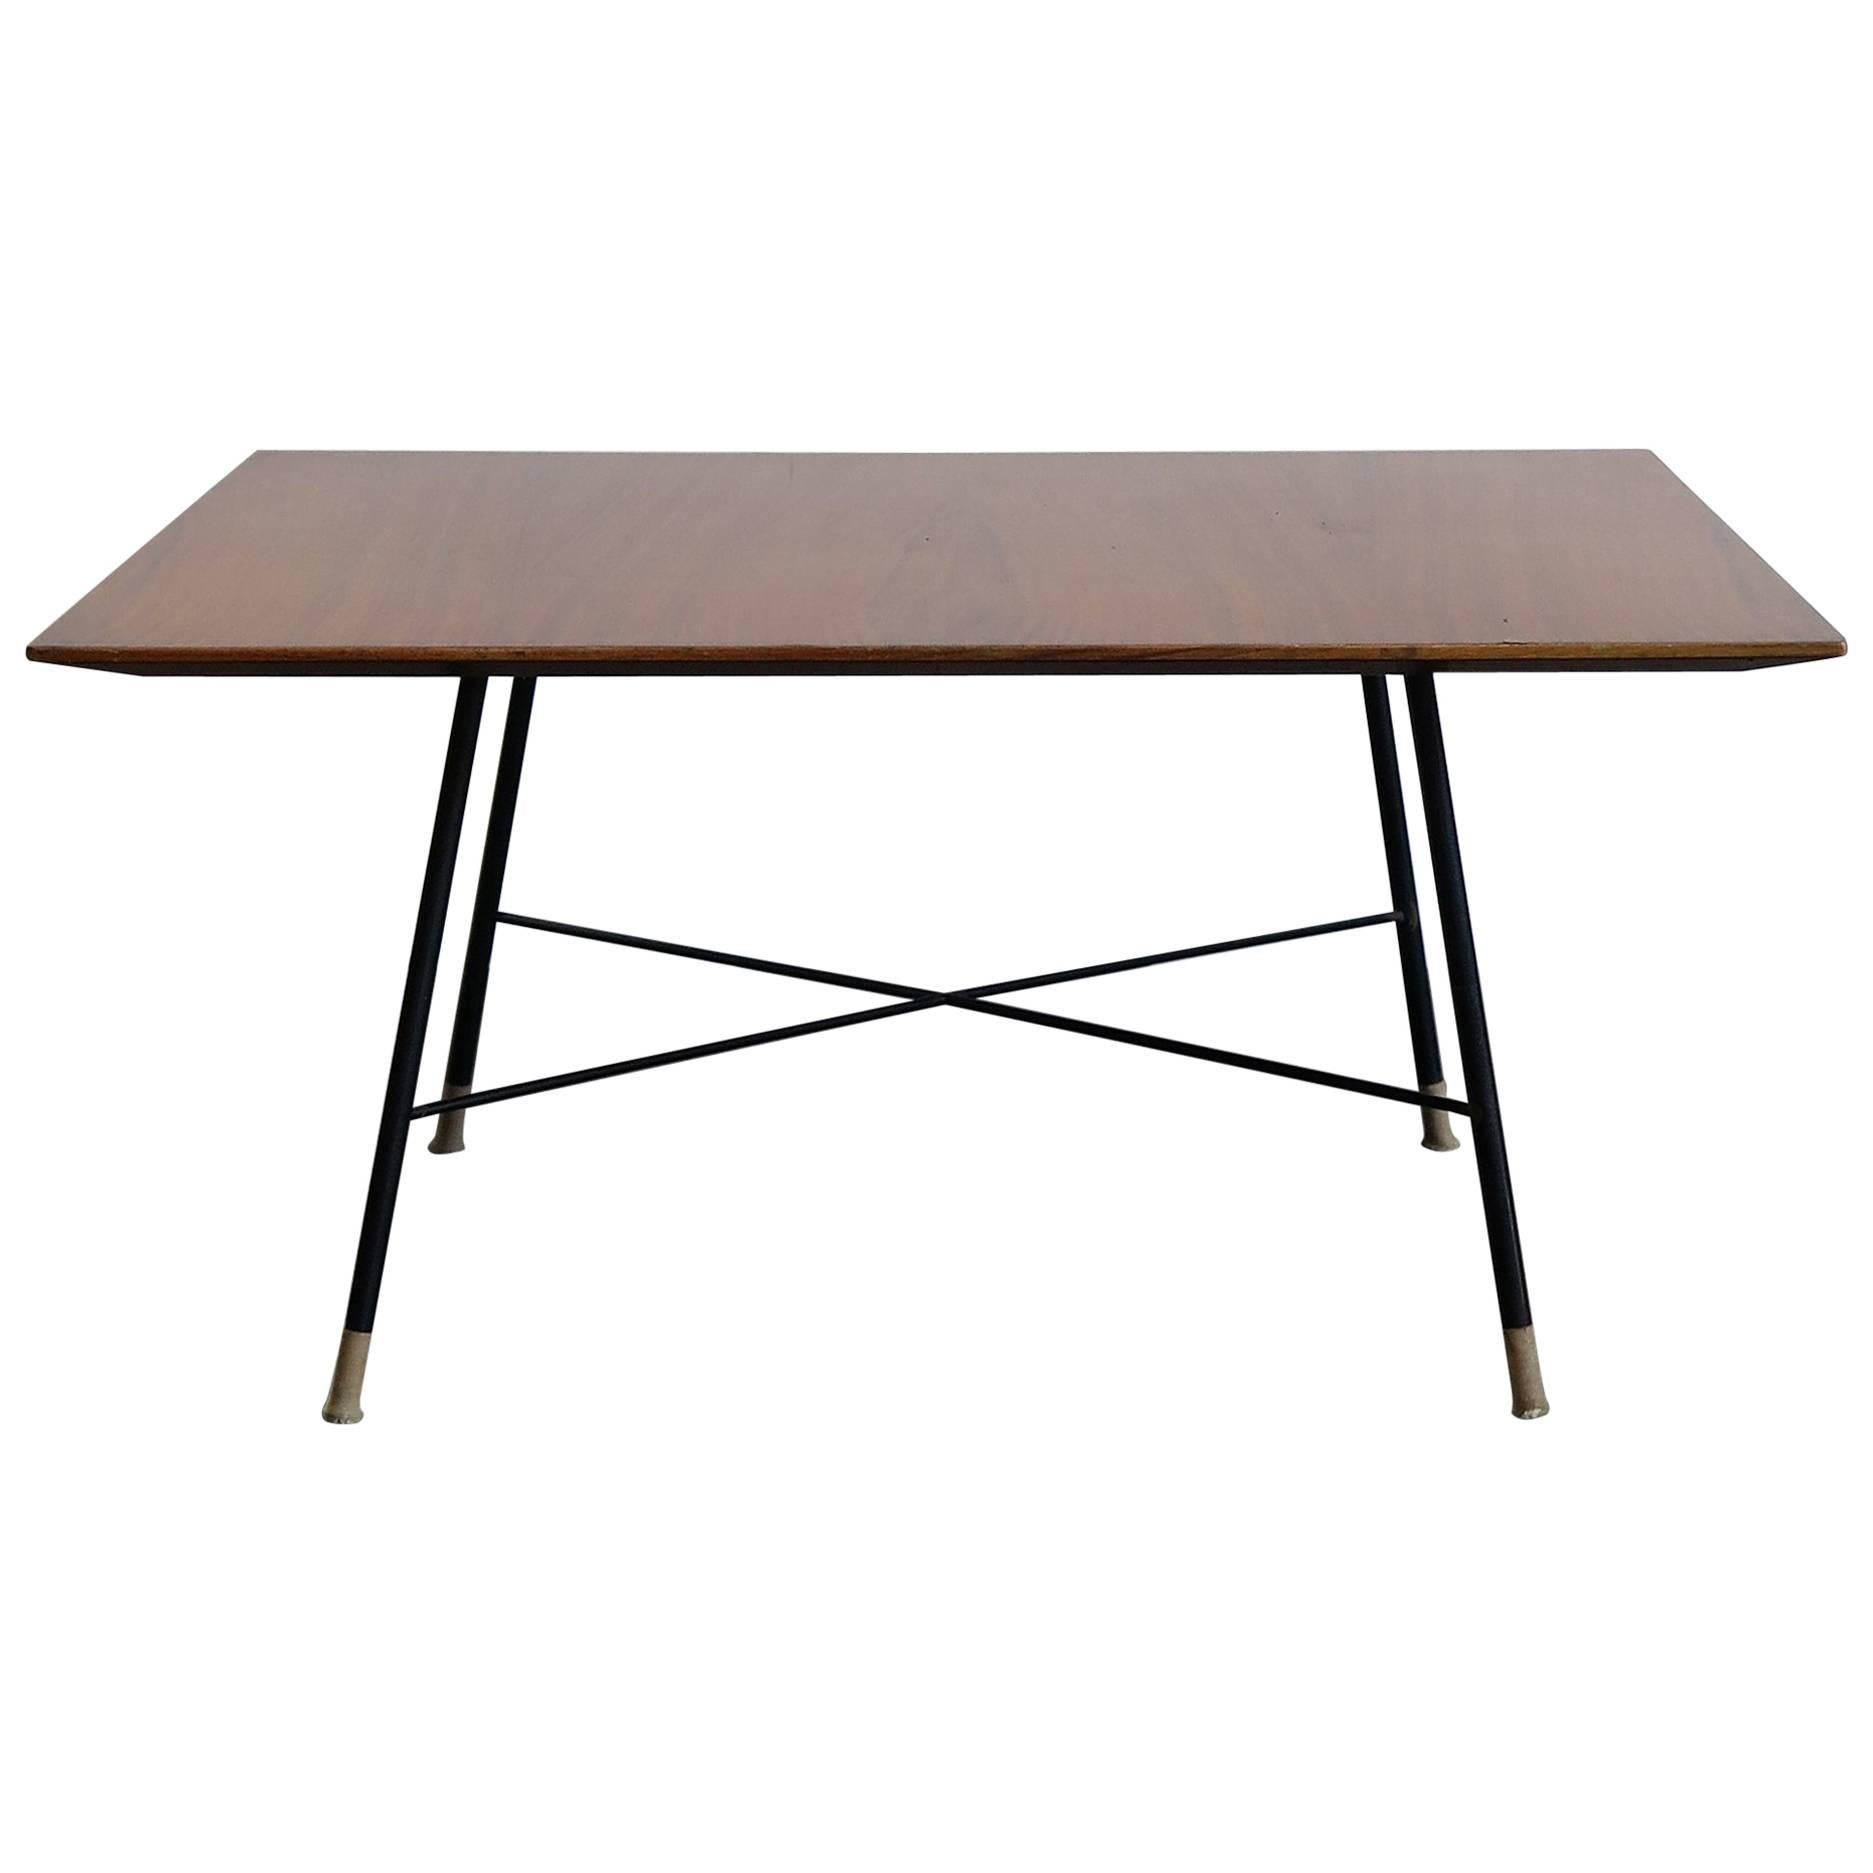 1950s Ico Parisi Midcentury Modern Square Wood Metal Coffee Table For  Cassina For Sale